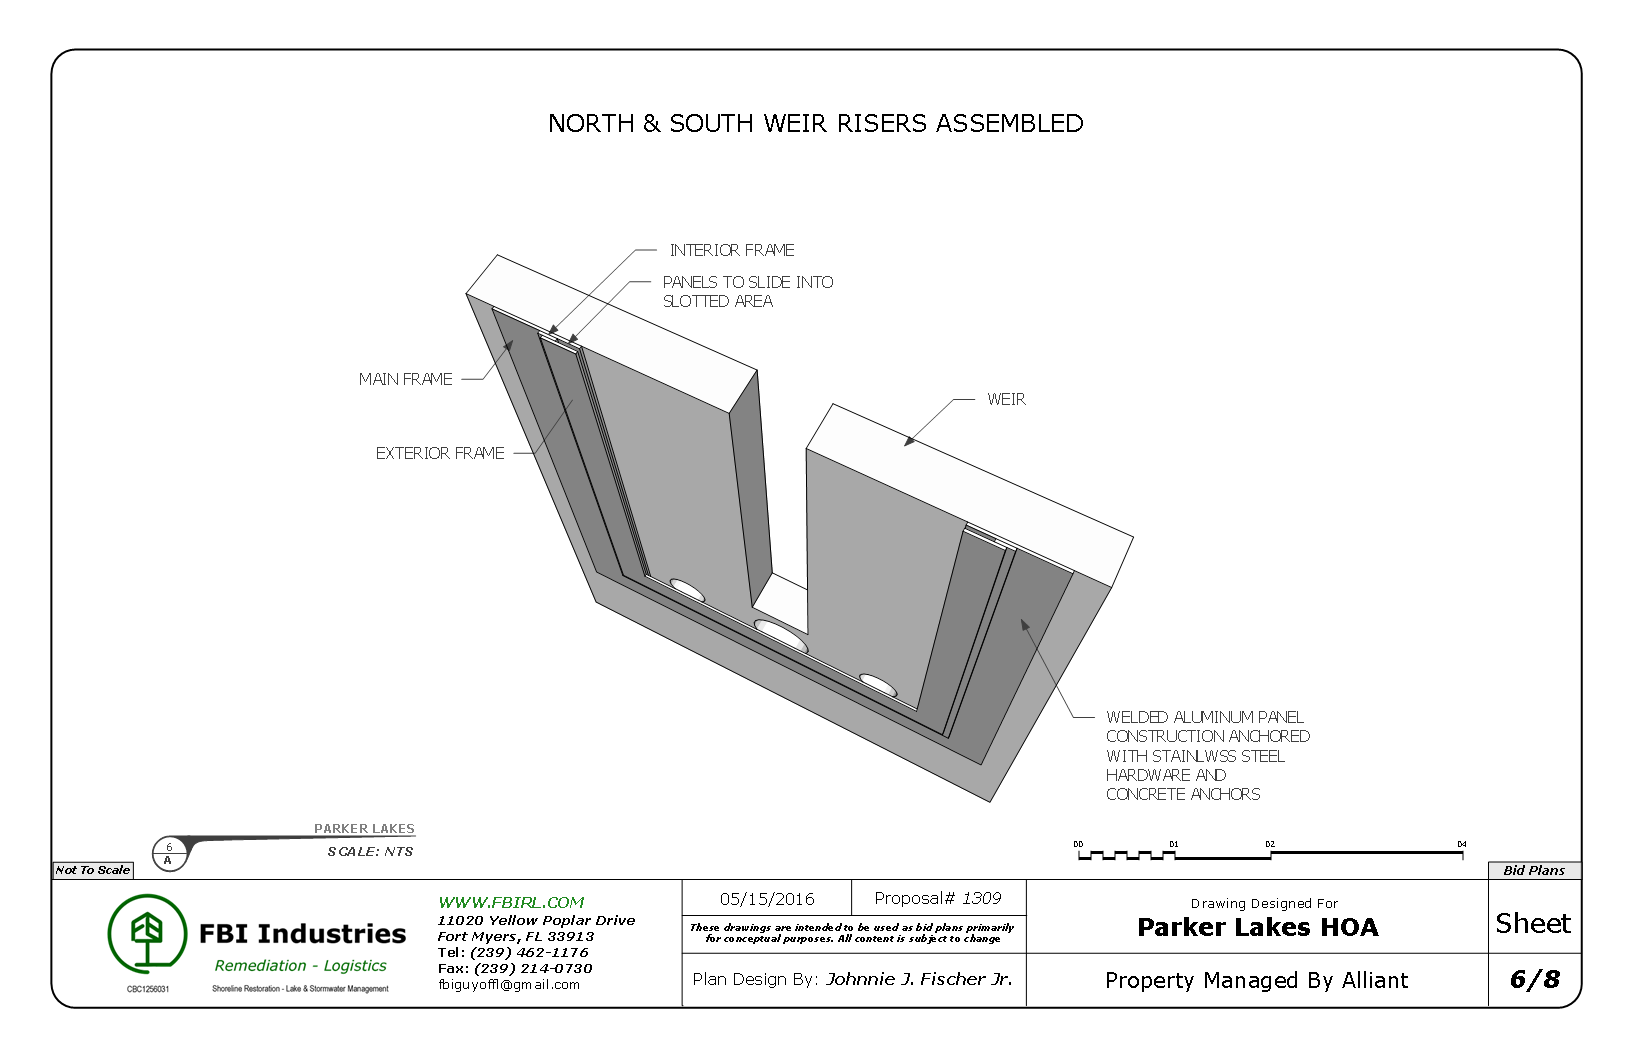 Proposal#1309_Parker Lakes Weir Presentation_Photos_6.png